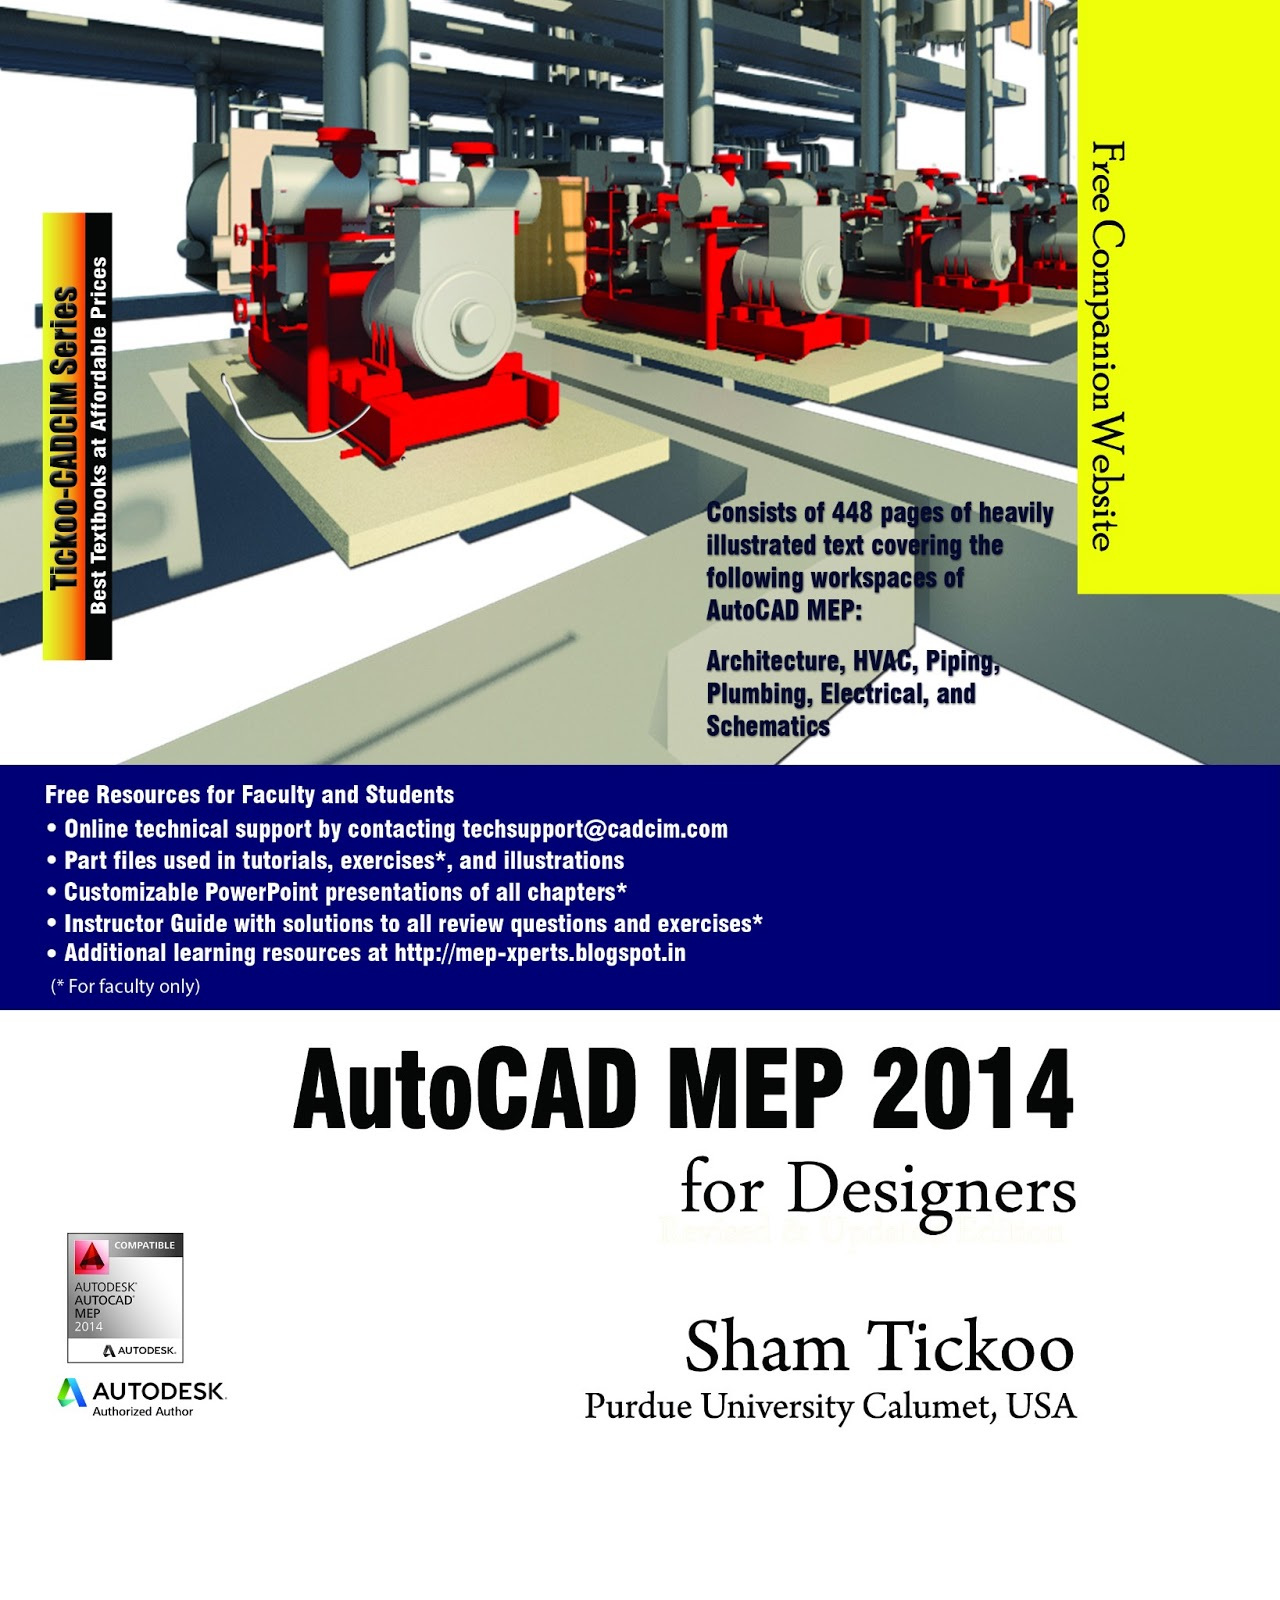 Bim quest revit rocks press realease autocad mep 2014 autocad mep 2014 for designers by prof sham tickoo and cadcim technologies to be released on 20 th may 2013 available in e book also for information baditri Image collections